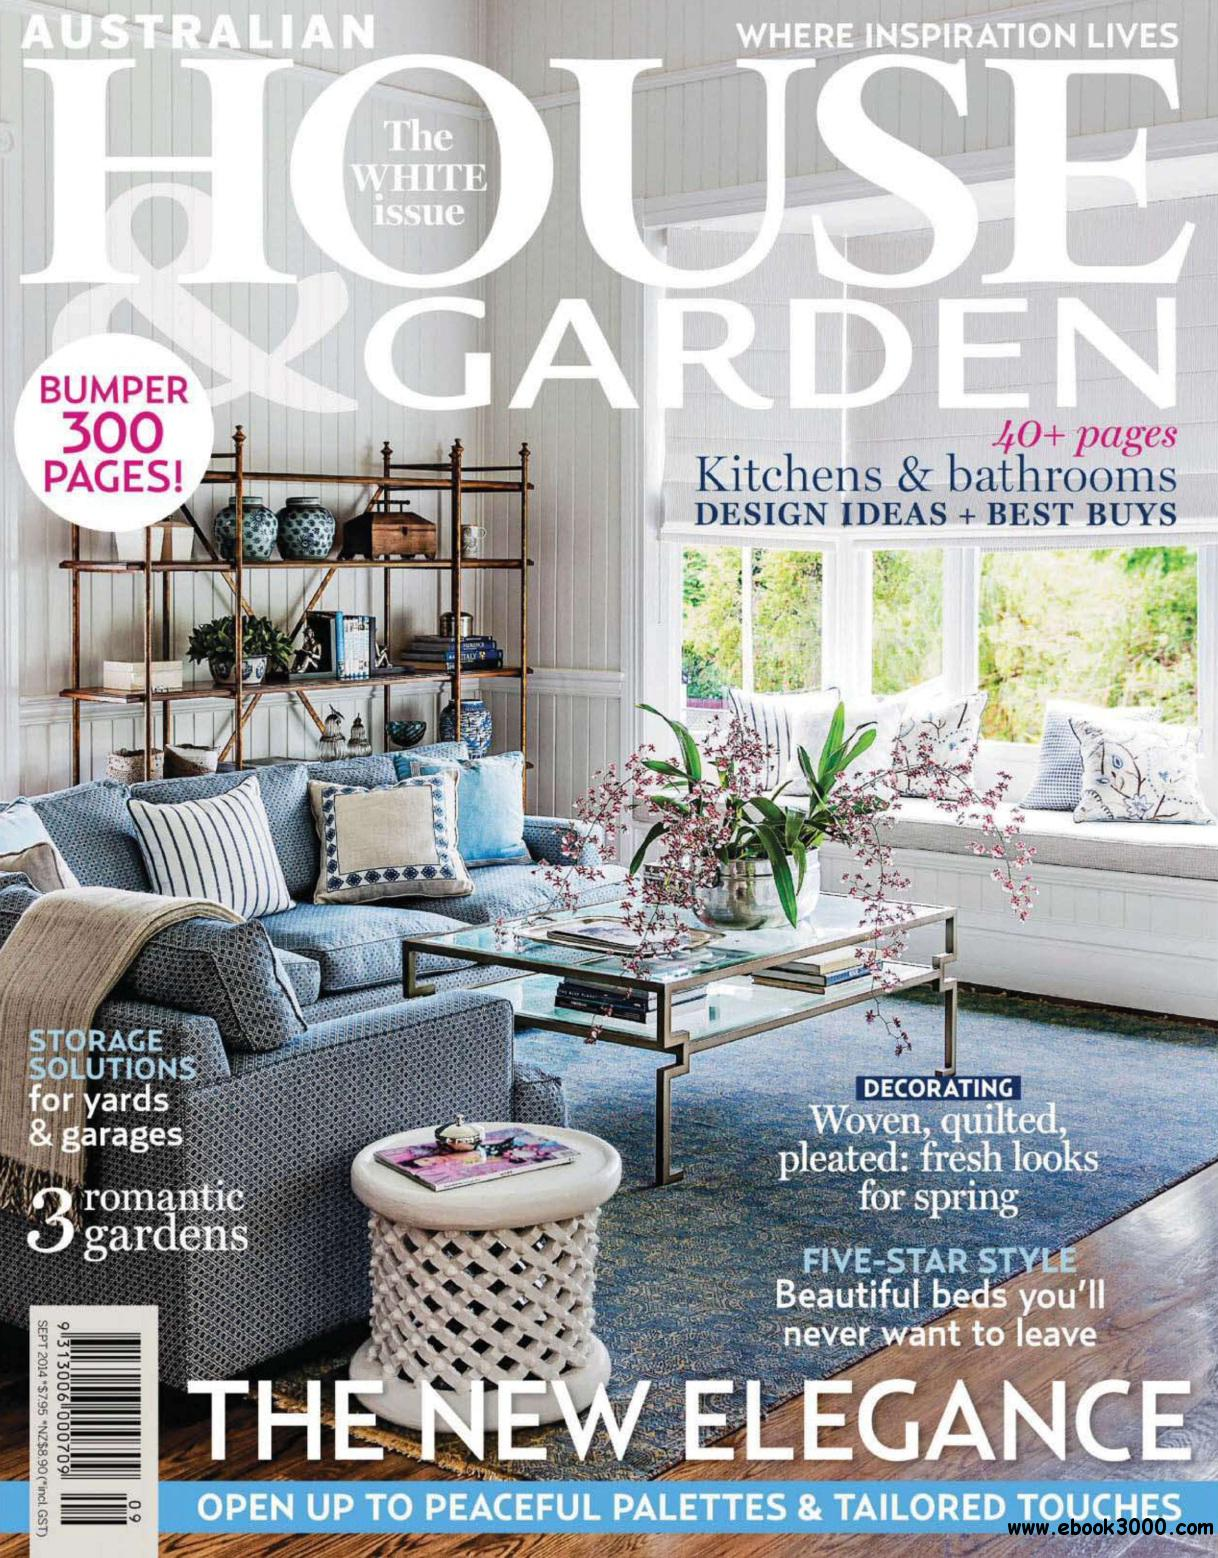 Australian House & Garden - September 2014 free download